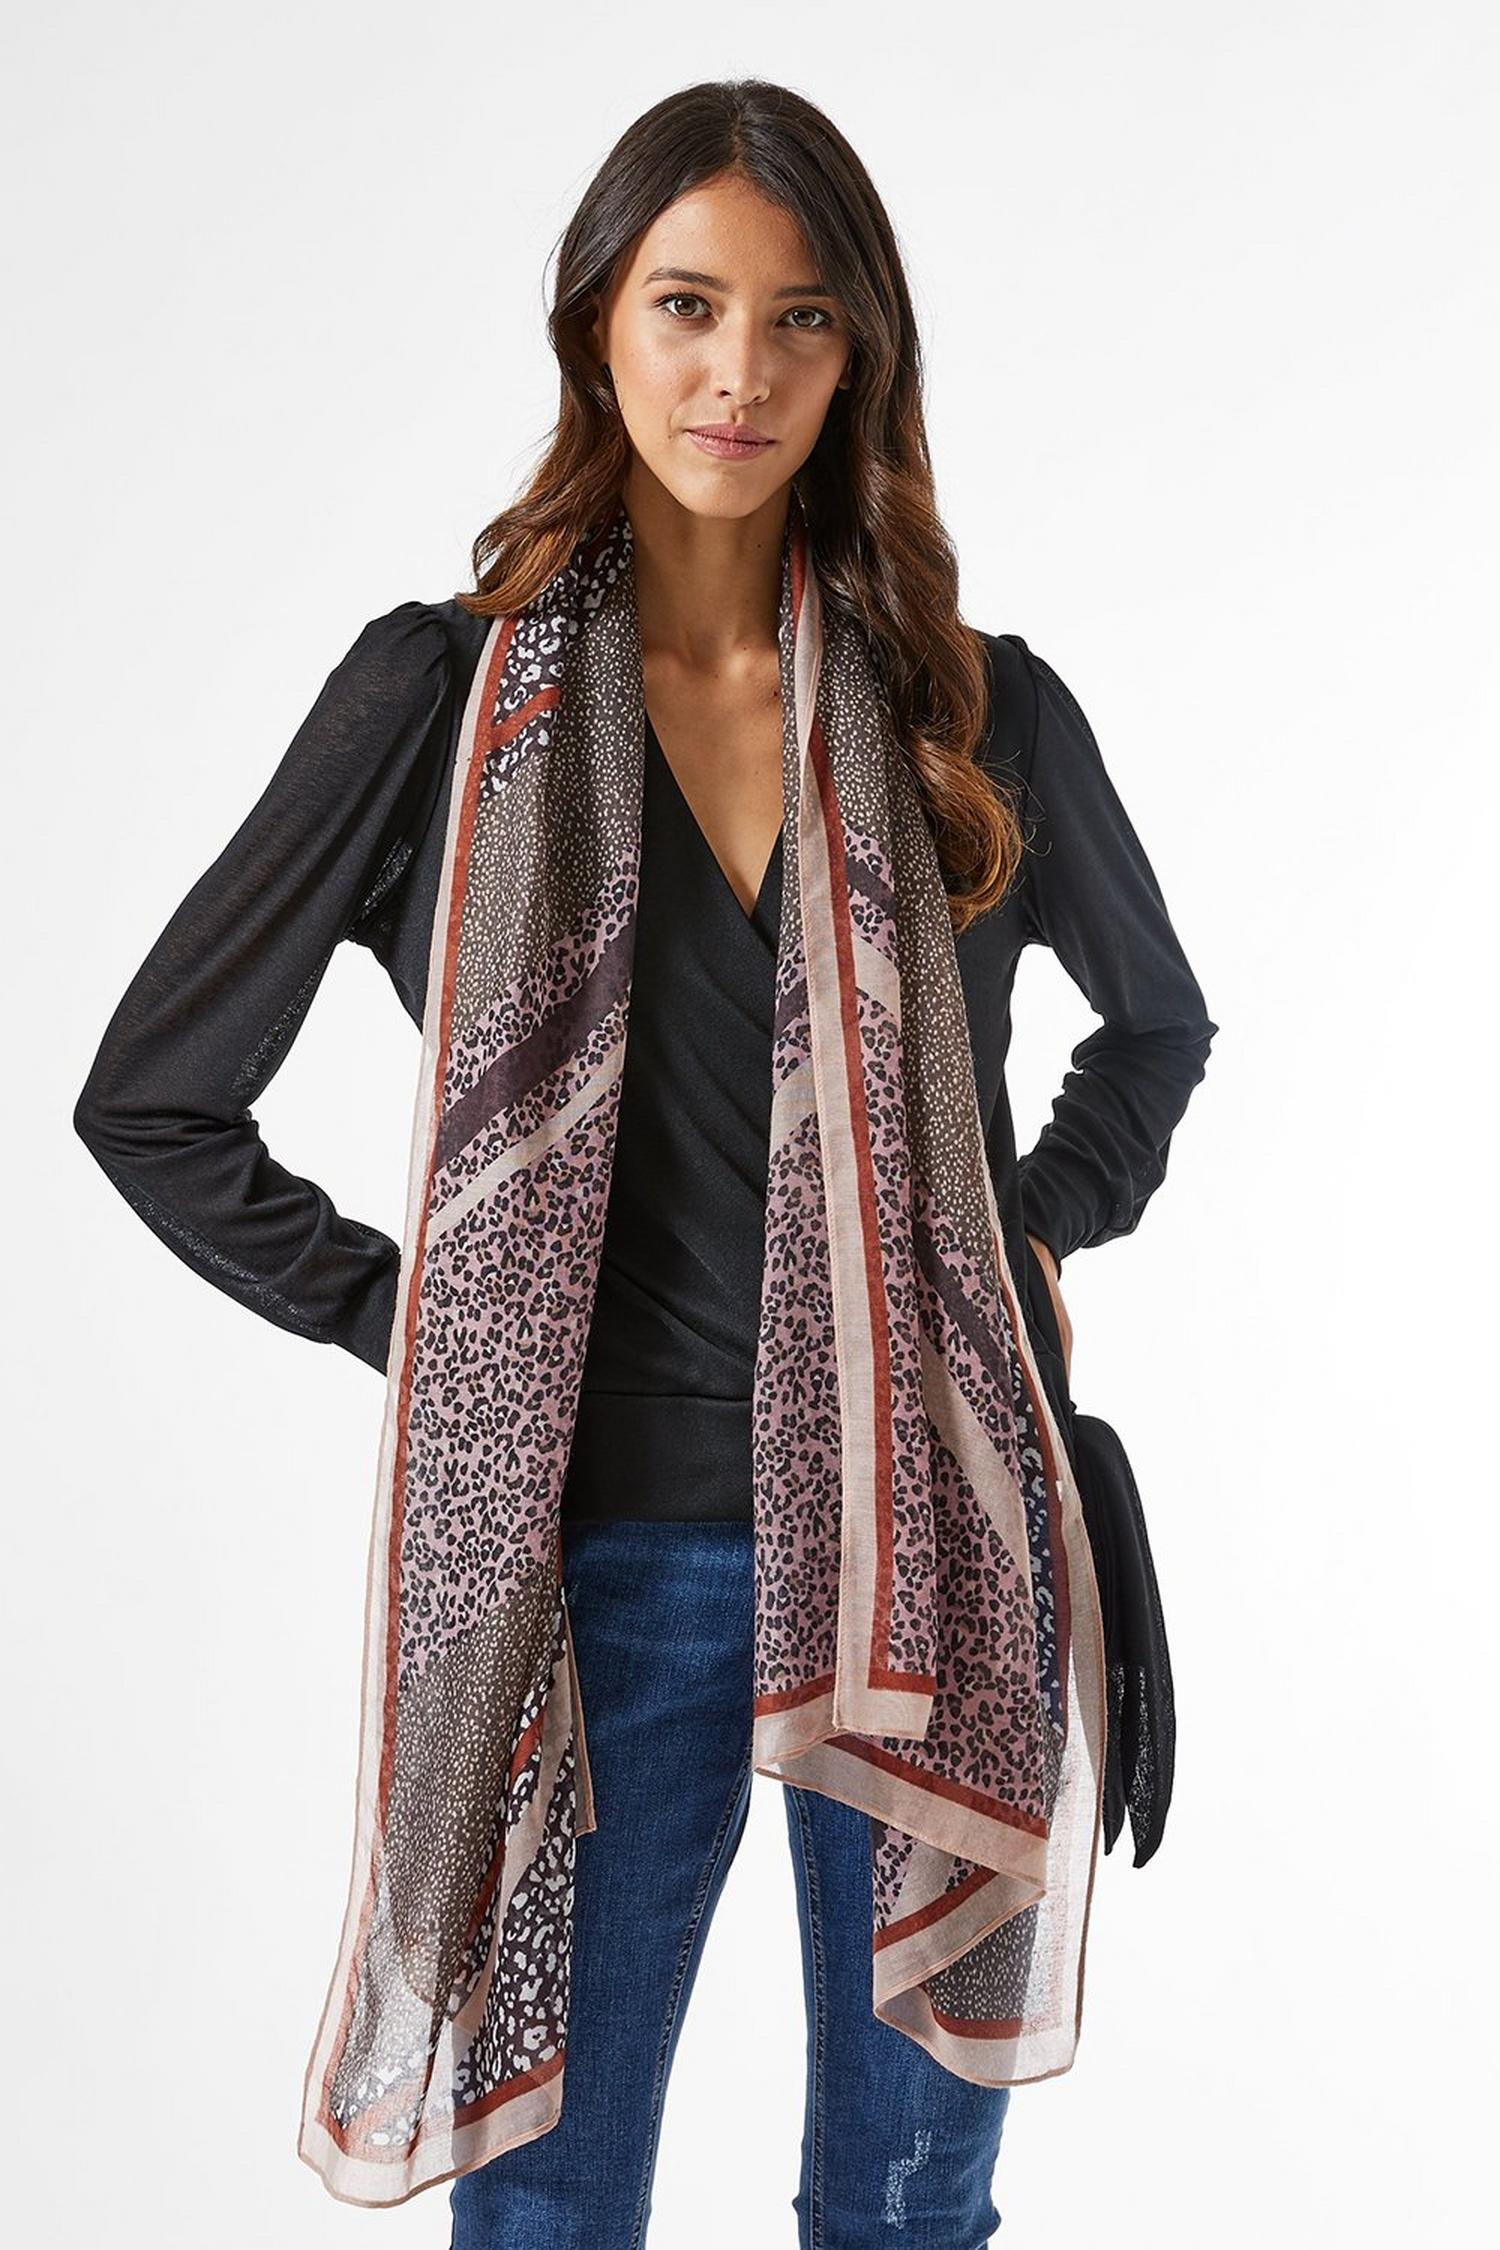 144 Multi Colour Striped and Animal Print Scarf image number 3